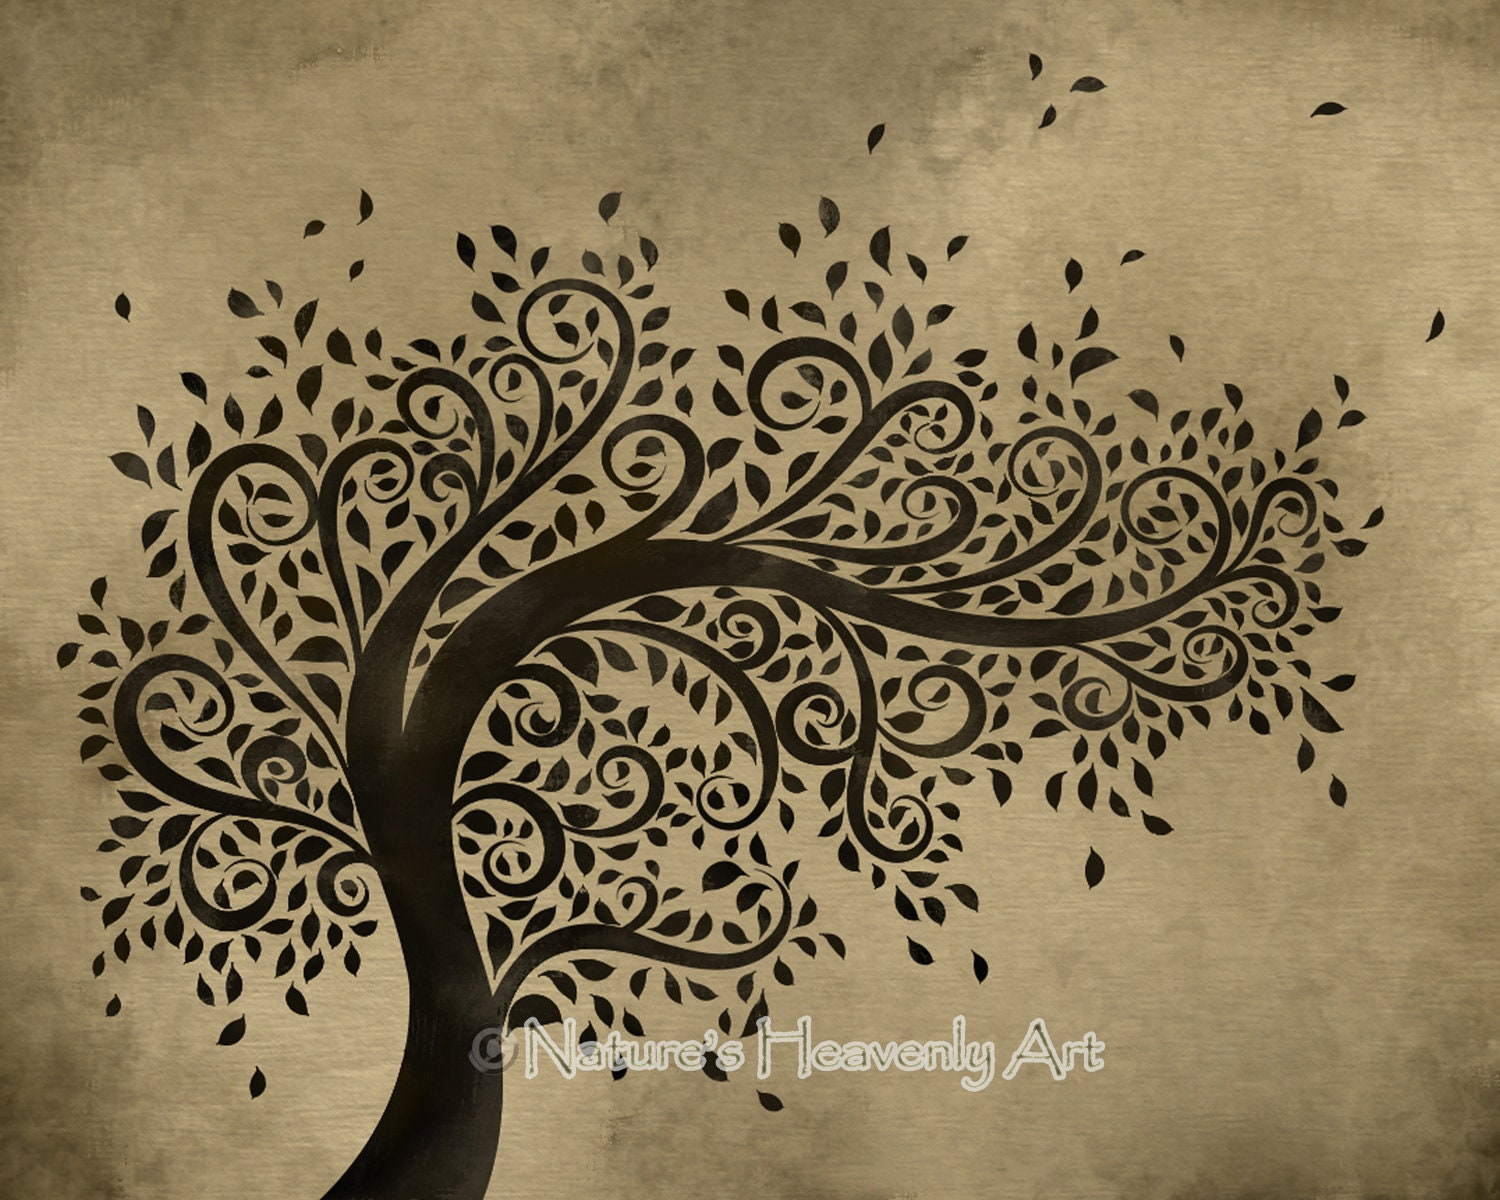 Whimsical Wall Art whimsical art tree wall print curly branches blowing leaves